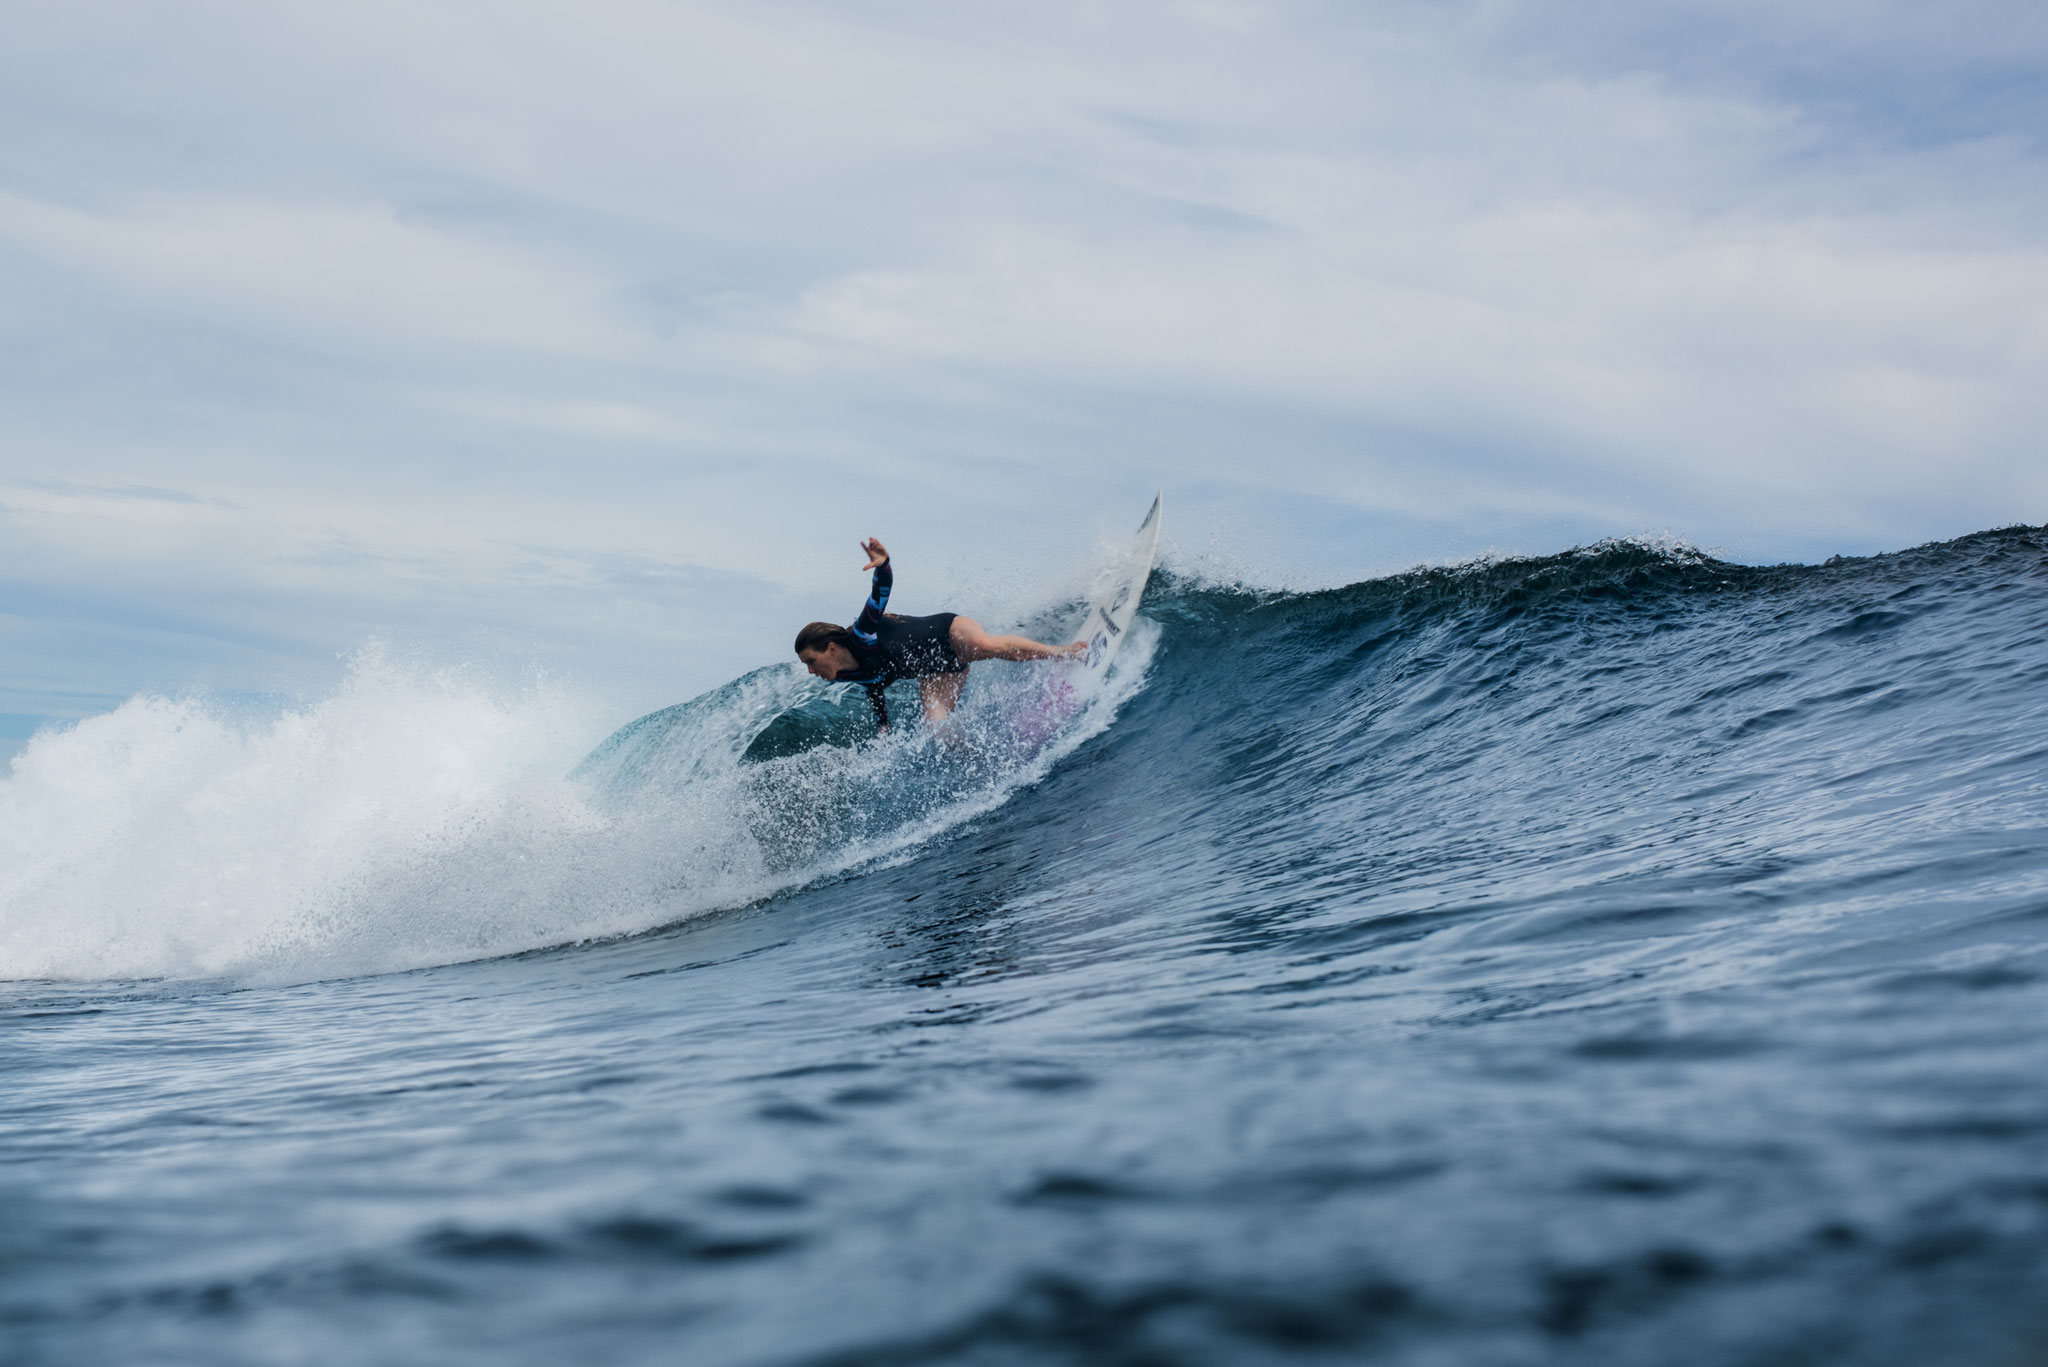 Surf coaching with surf video analysis